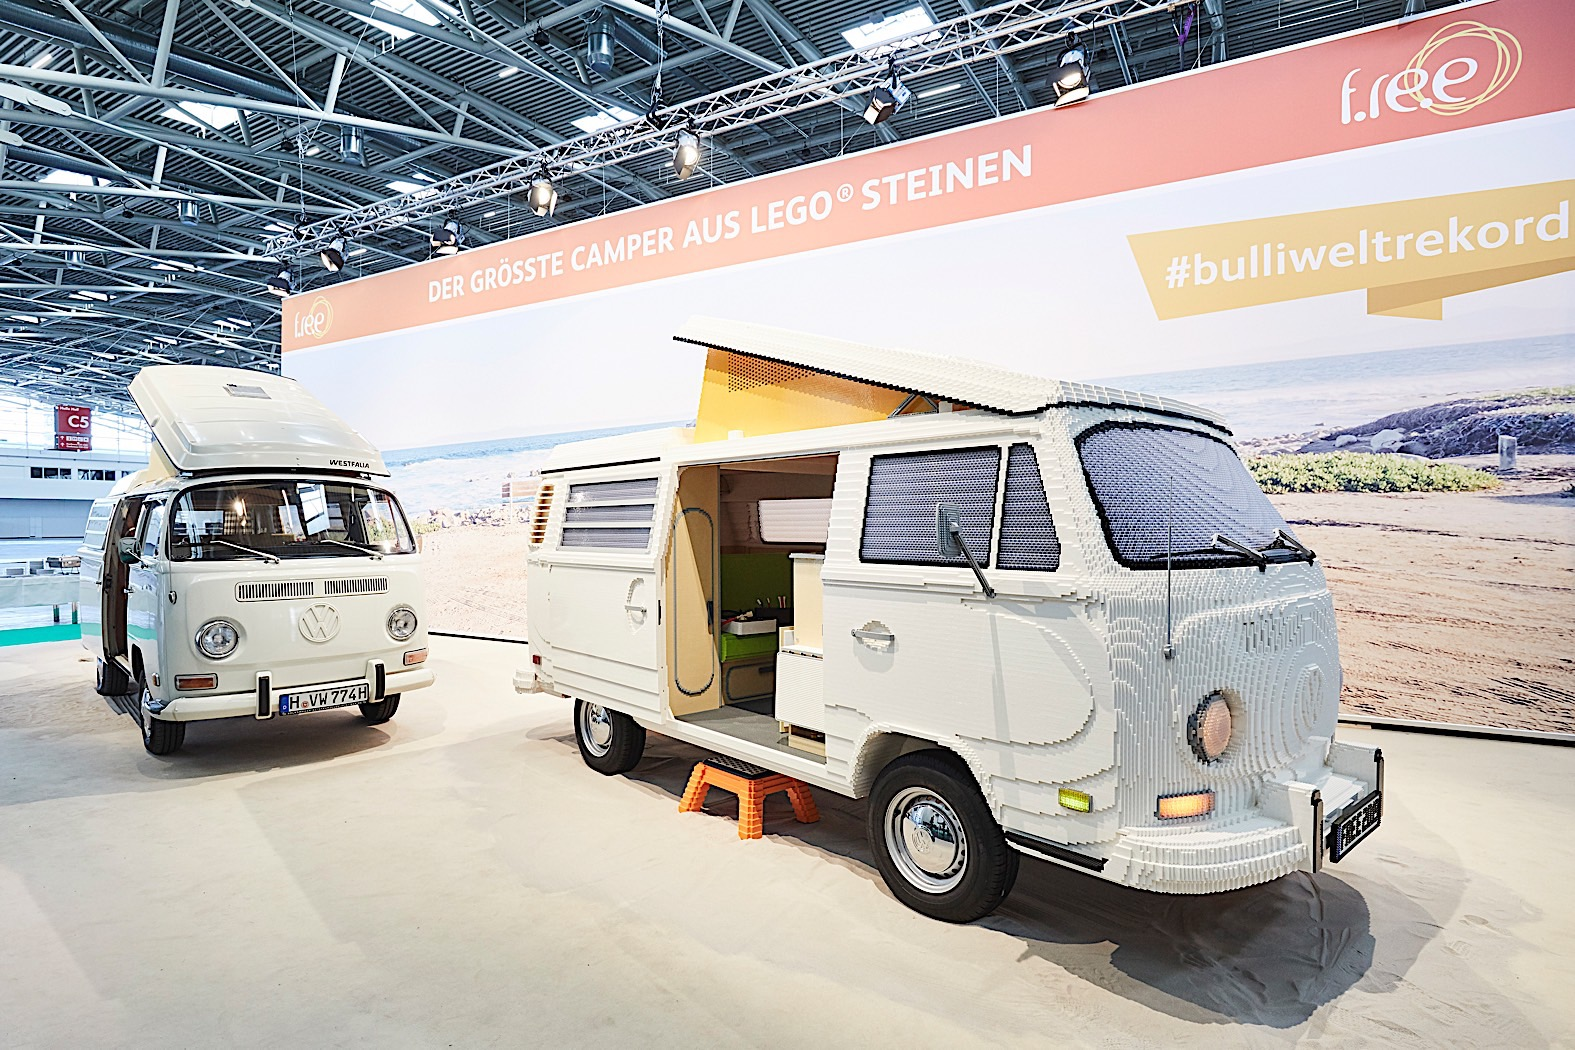 full-size-volkswagen-t2-made-of-lego-comes-complete-with-sliding-door-132401_1